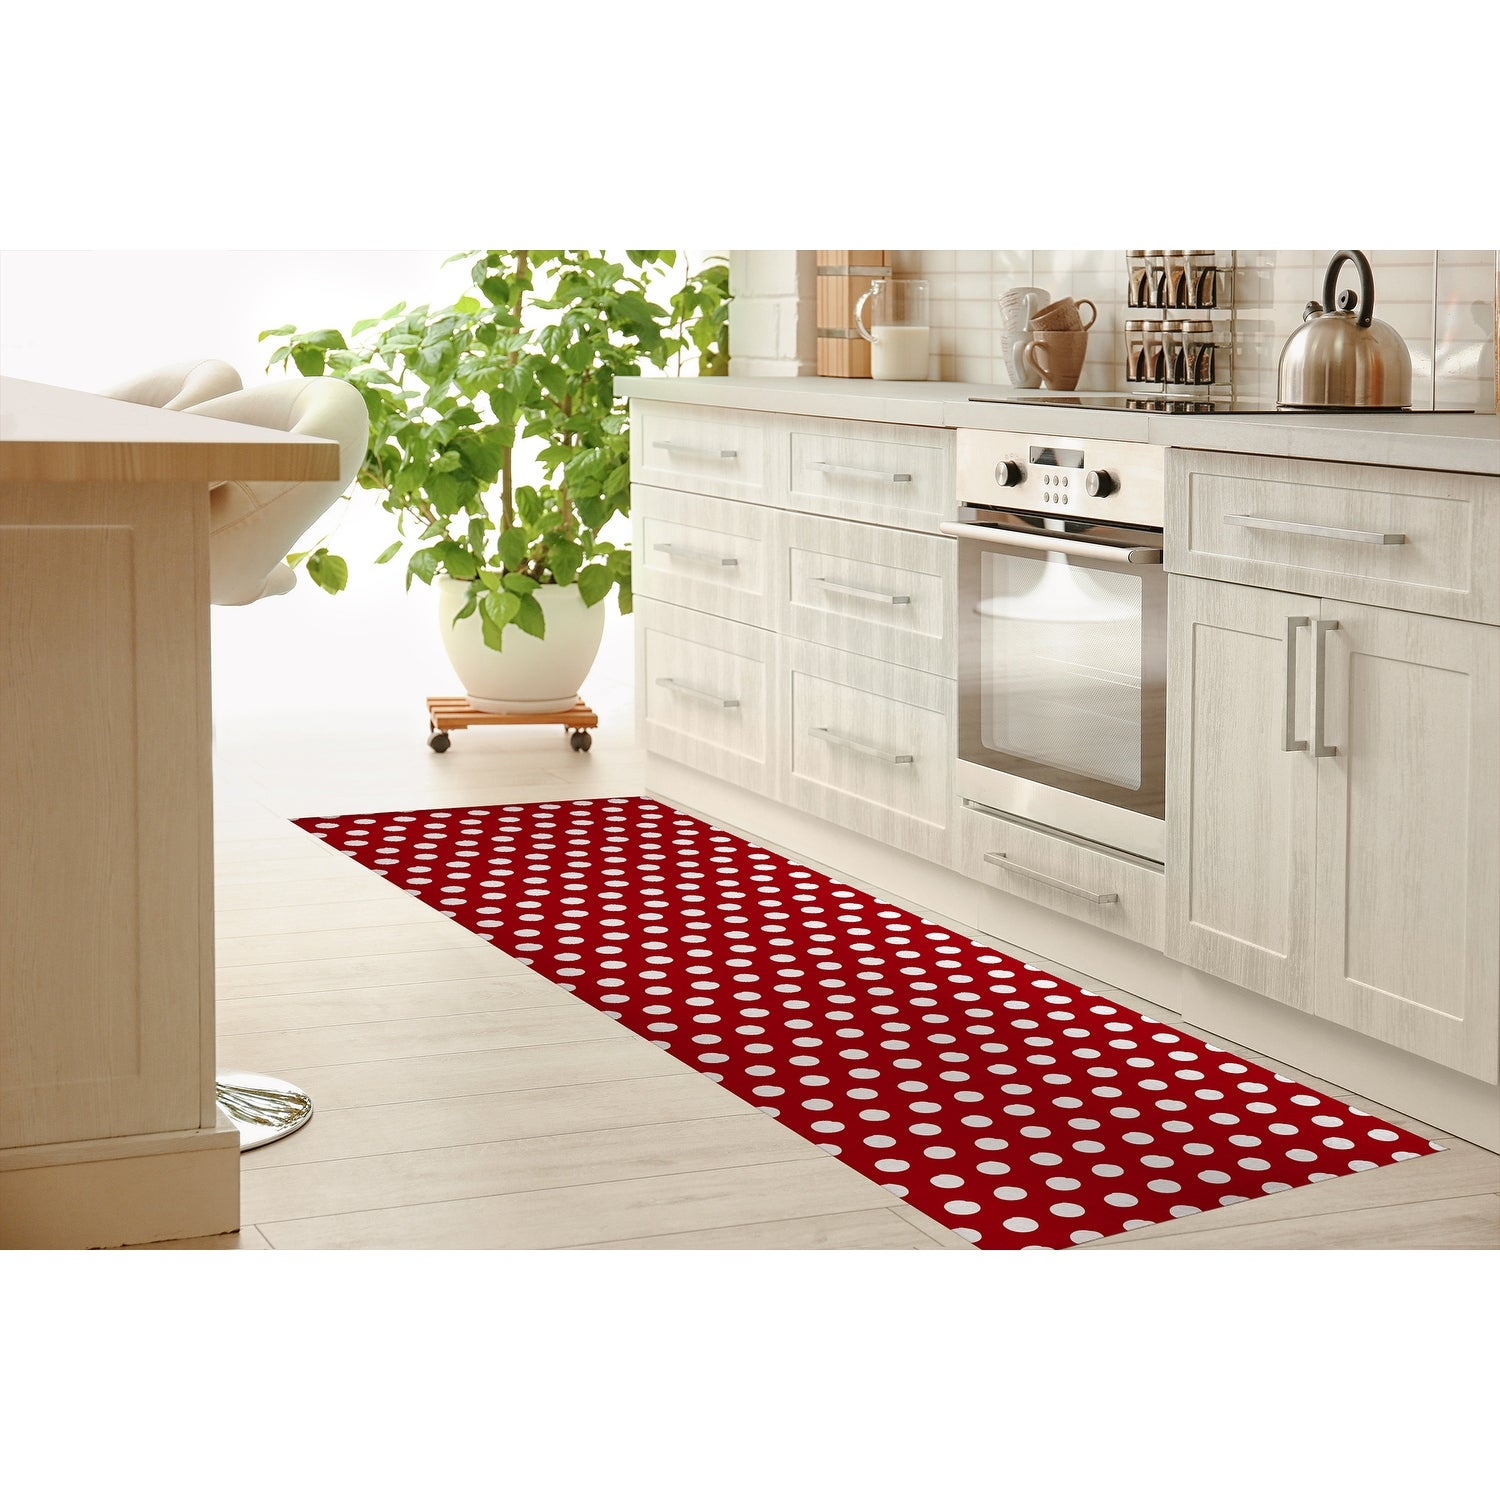 Big Polka Dots Red Kitchen Mat By Kavka Designs On Sale Overstock 30585774